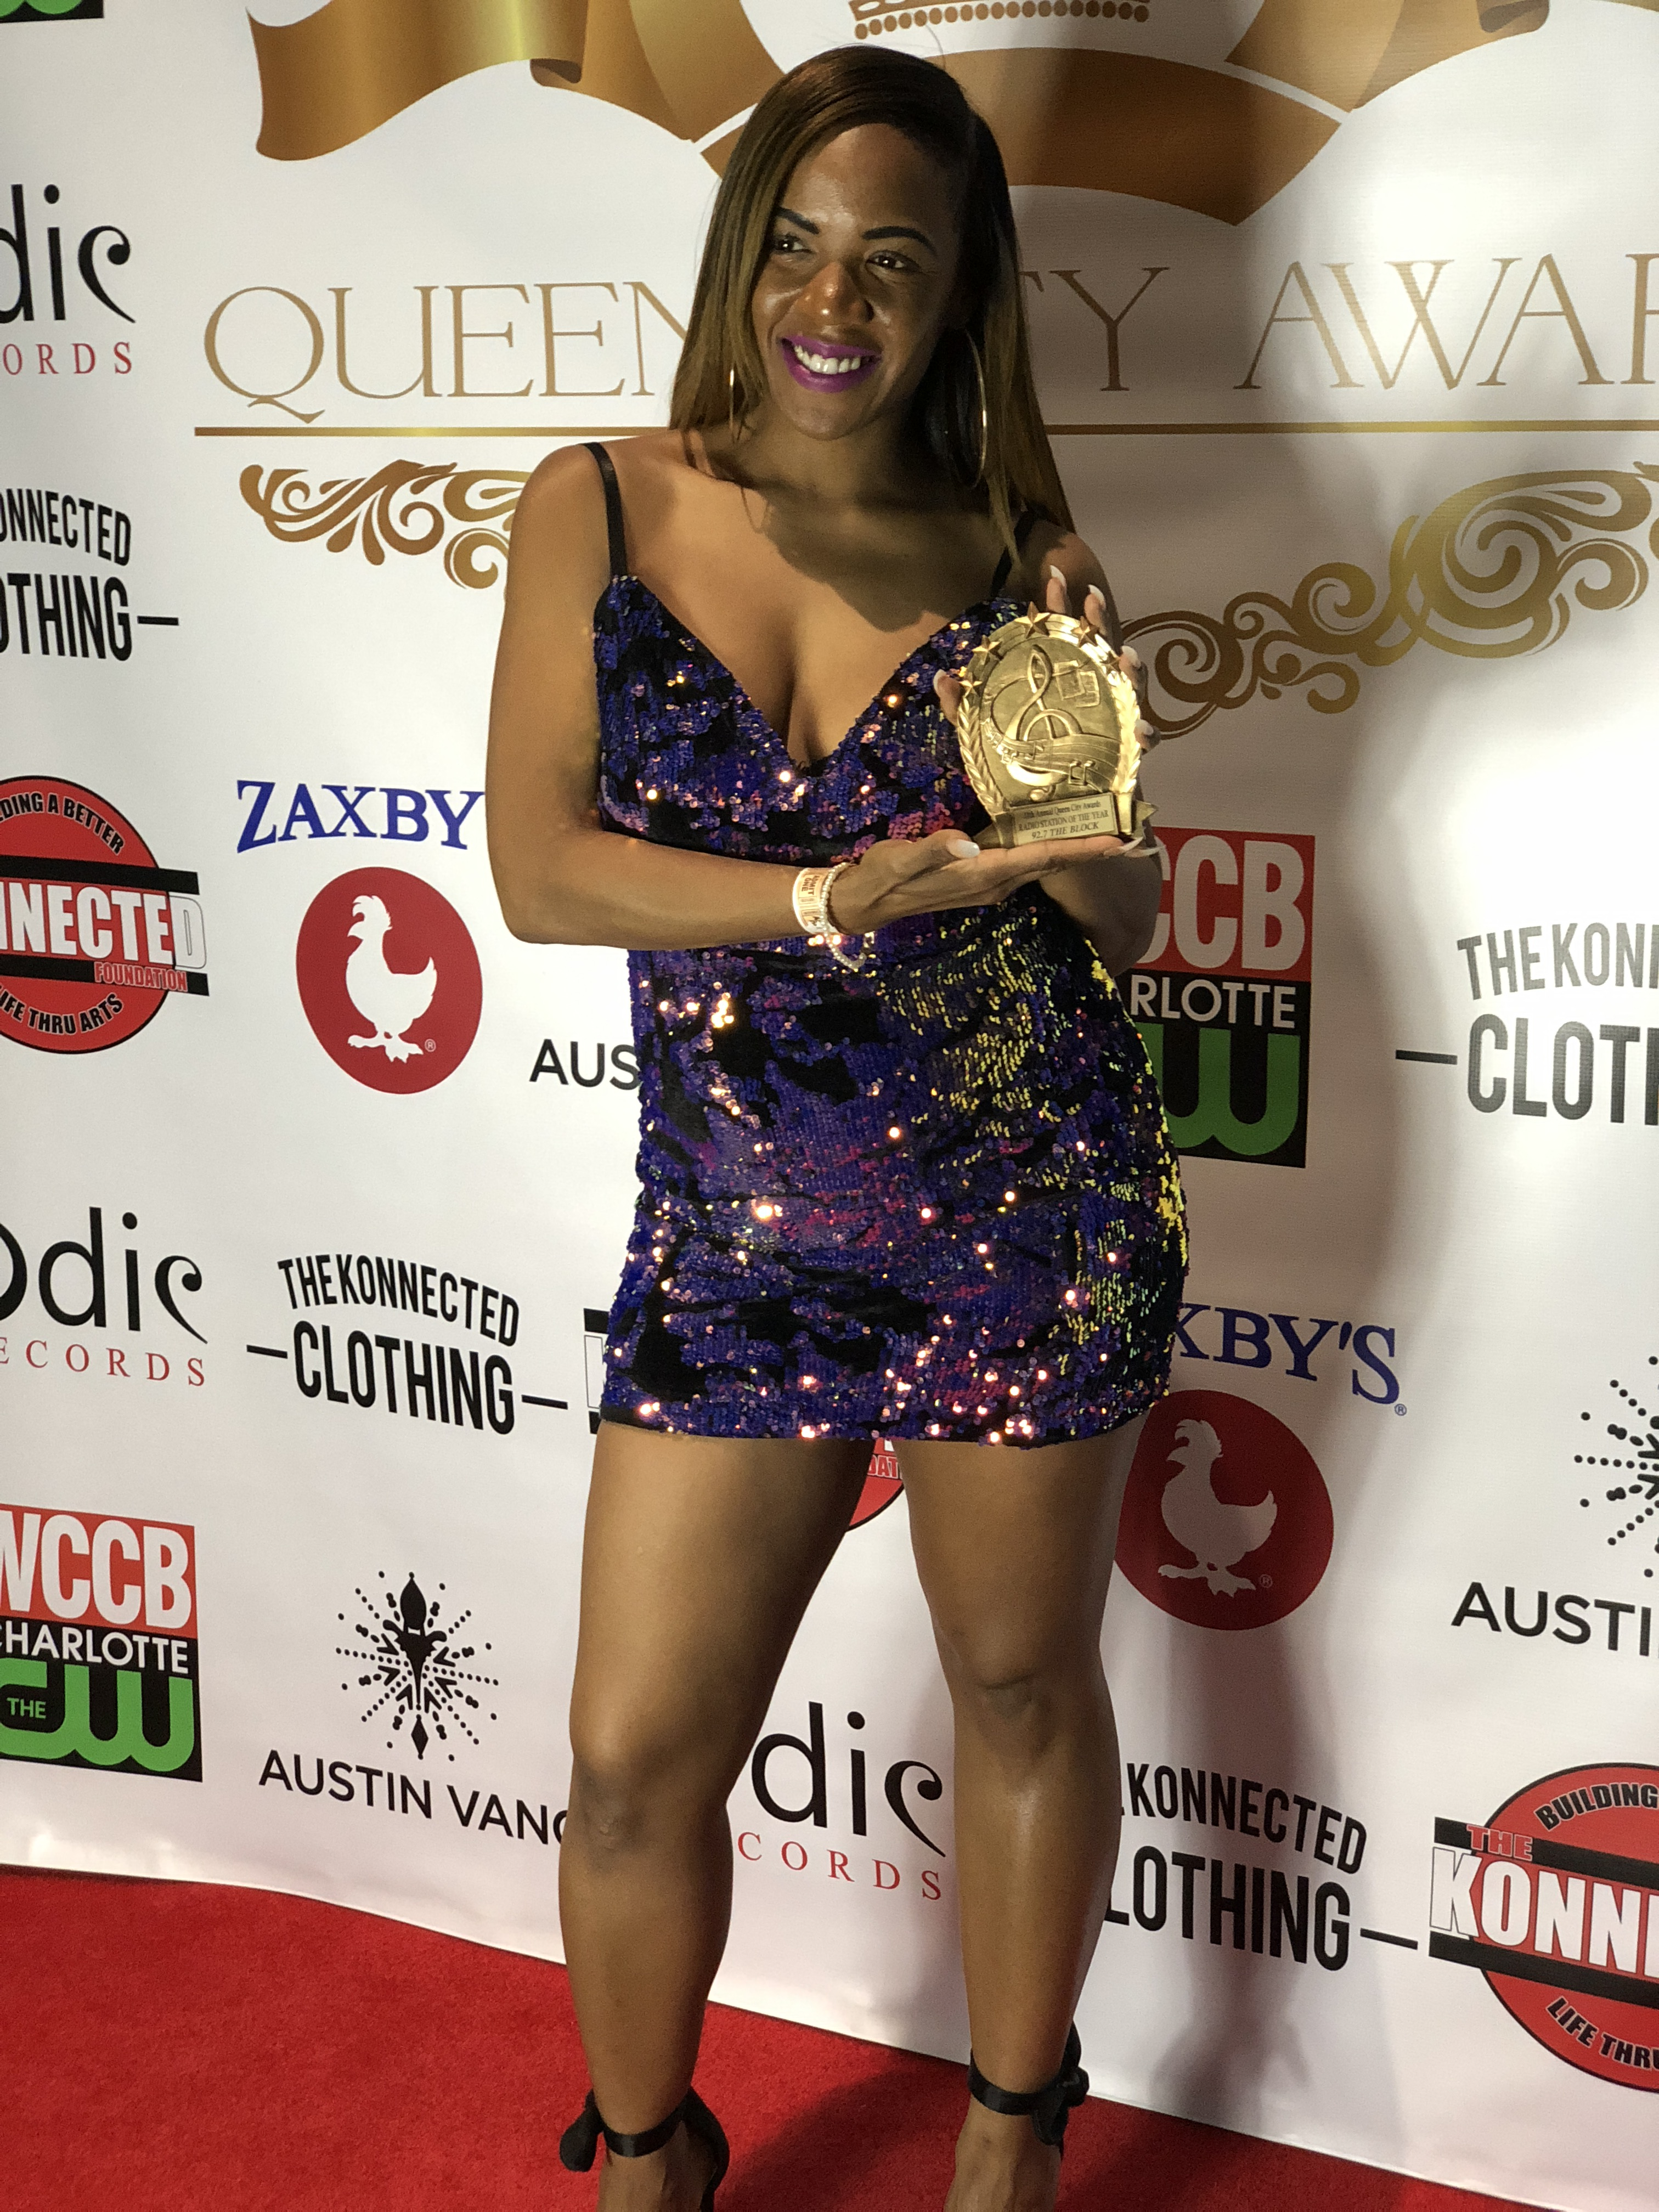 The 11th Annual QC Awards